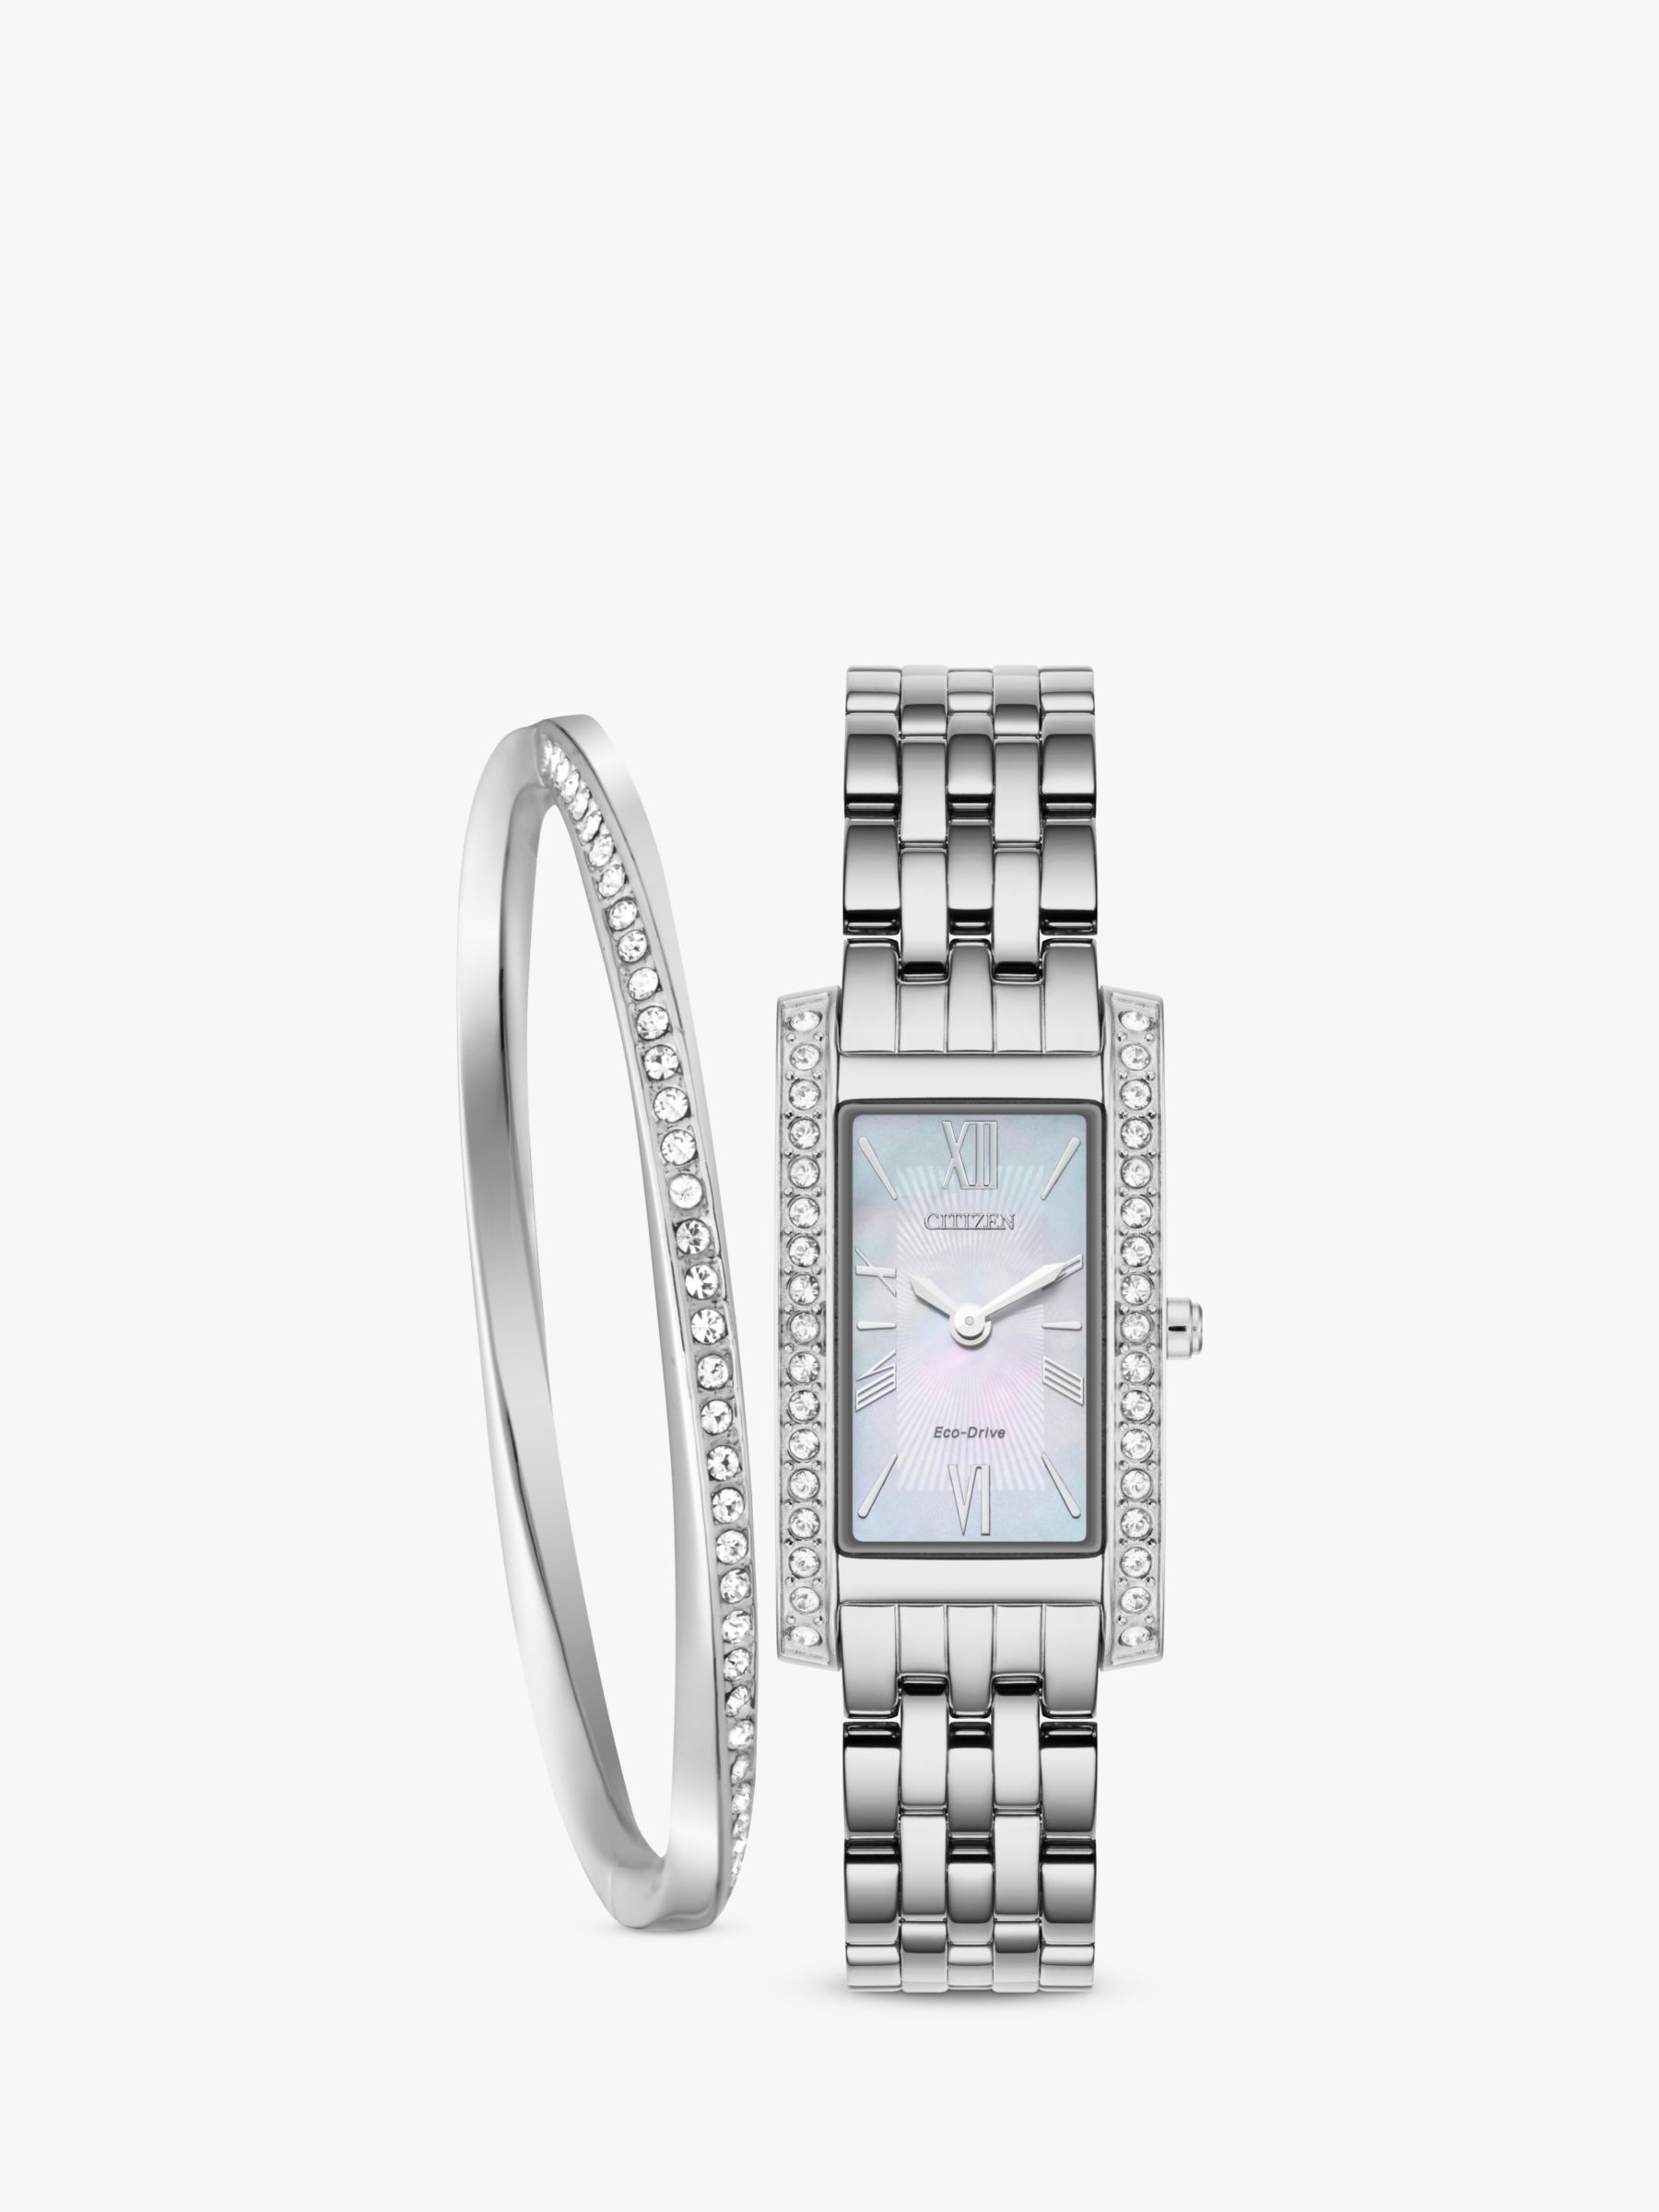 Citizen Citizen EX1470-60D SET Women's Eco-Drive Crystal Bracelet Strap Watch and Bangle Gift Set, Silver/Mother of Pearl